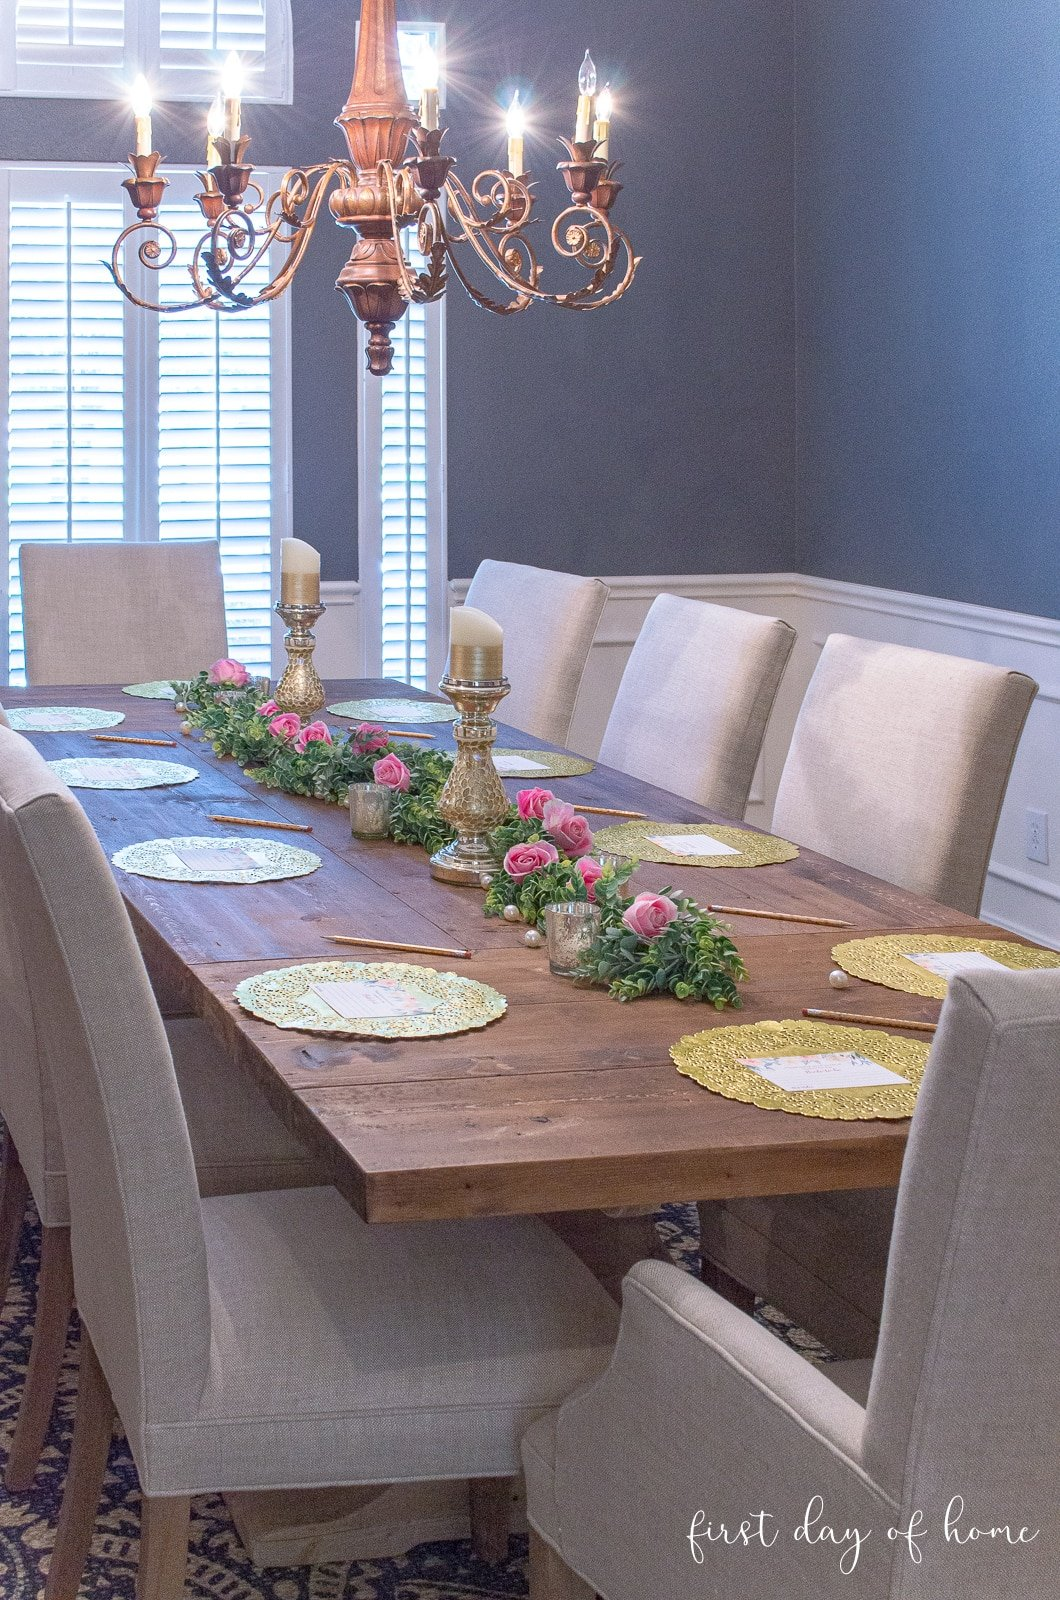 Bridal shower decoration ideas for formal dining room table